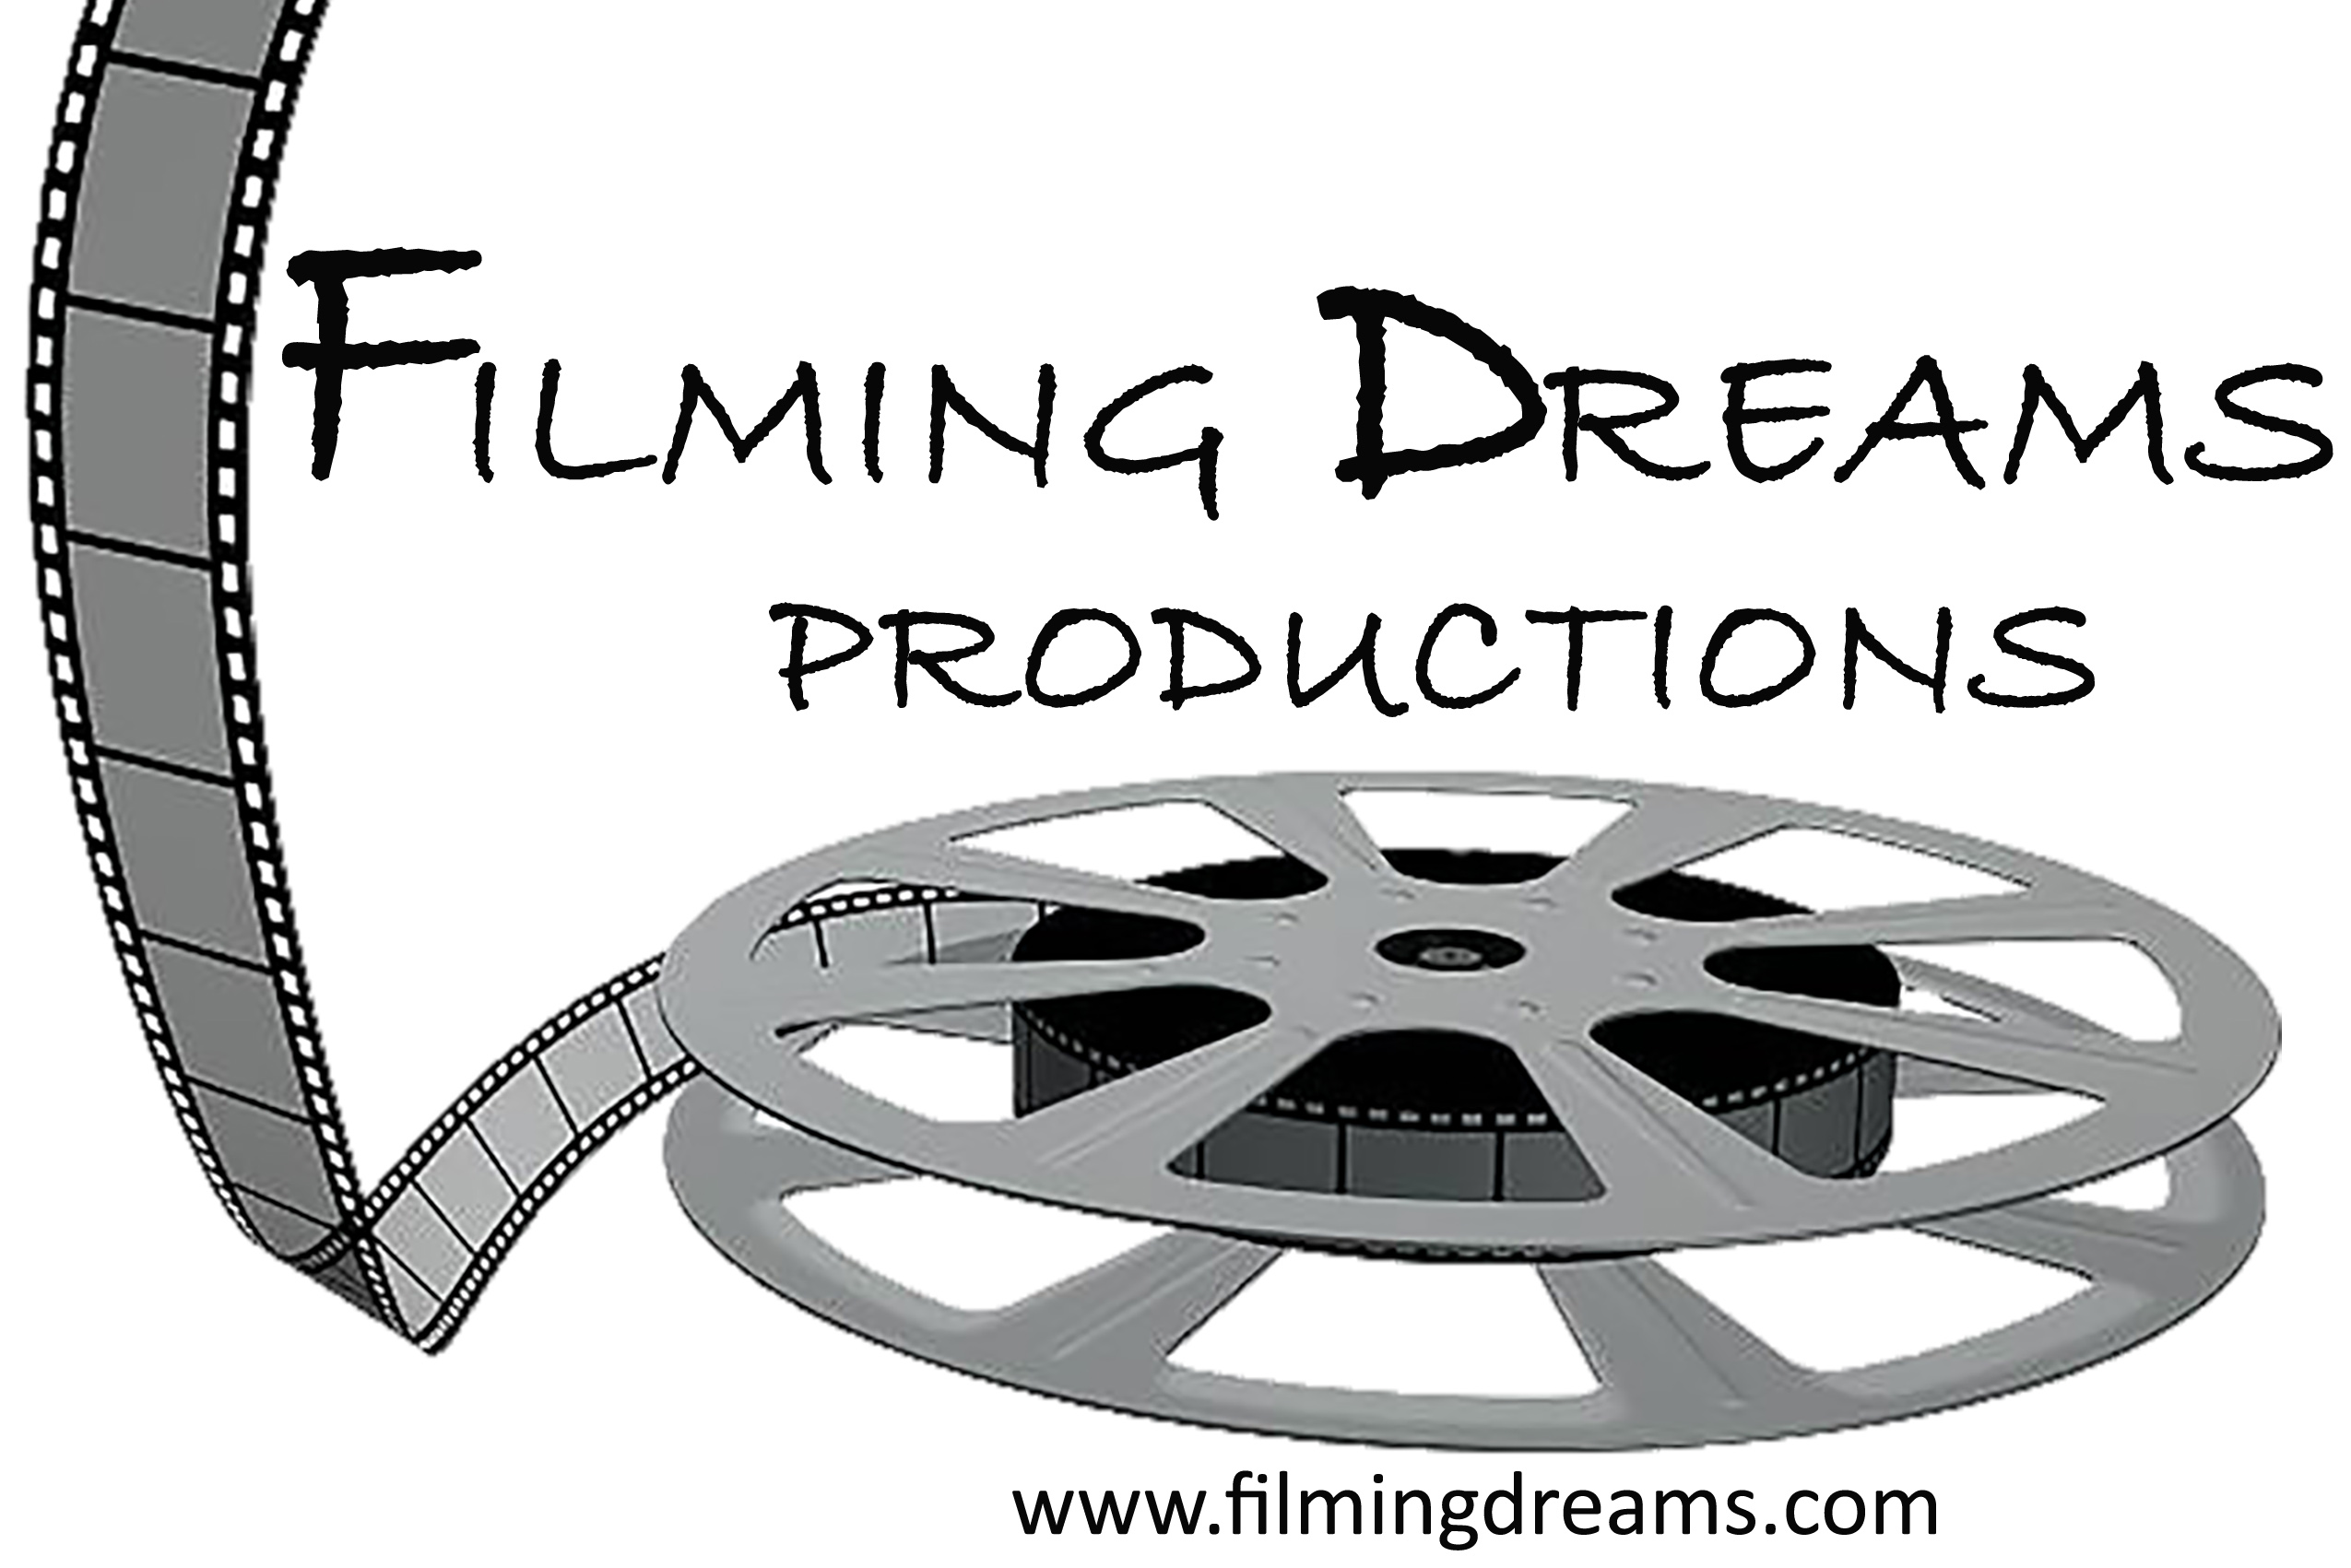 Filming Dreams Productions